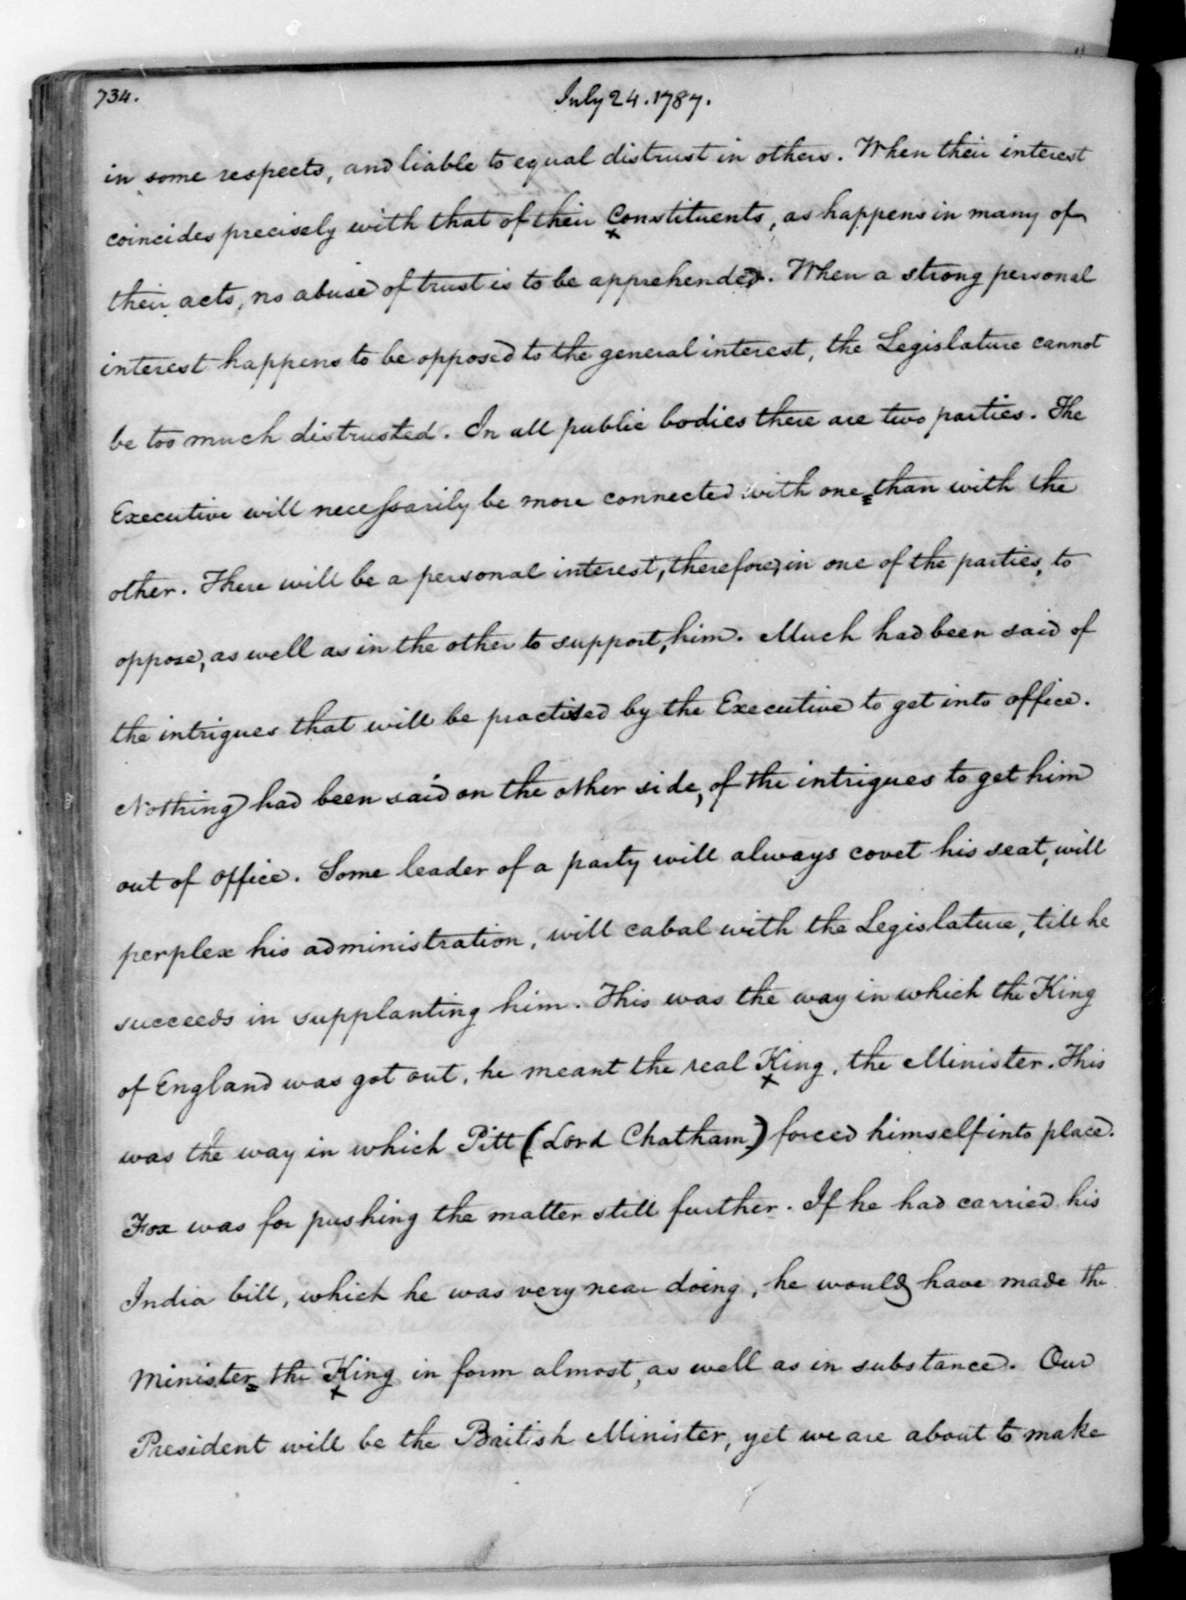 James Madison John C. Payne. John C. Payne's Copy of James Madison's Original Notes on Debates in the Federal Convention of 1787.